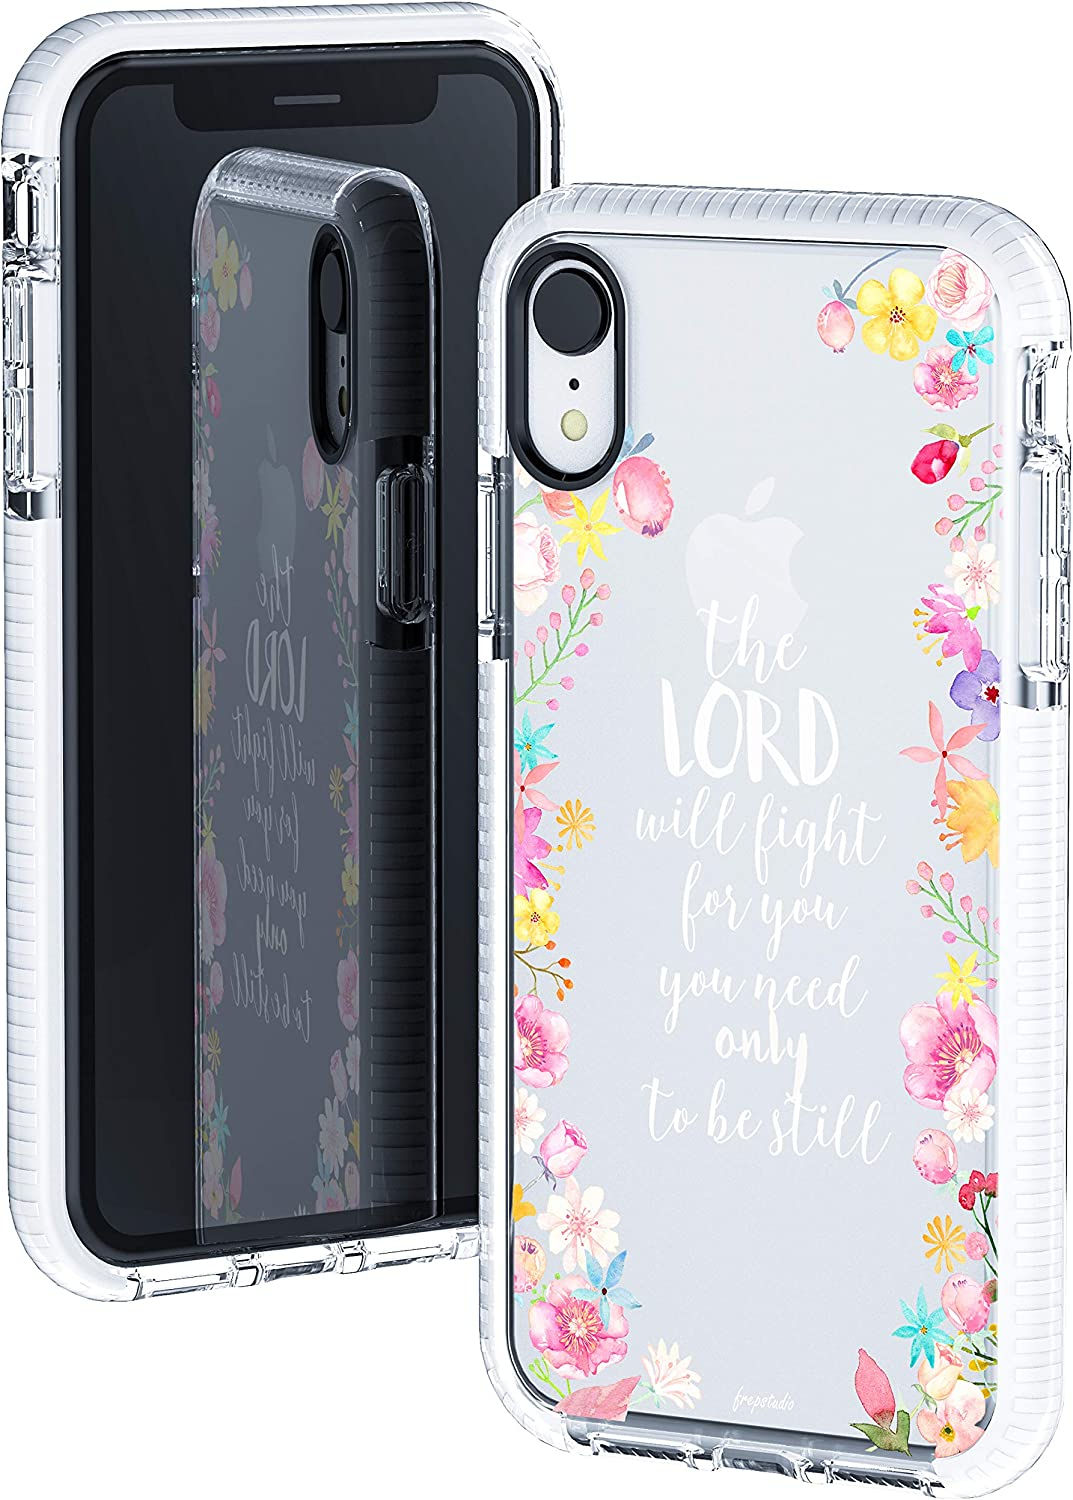 iPhone XR Clear Case,Cute Pink Floral Flowers Rose Bible Verses Girls Women Power Quote Christian Inspirational Exodus 14:14 Trendy Soft Protective Clear Case with Design Compatible for iPhone XR